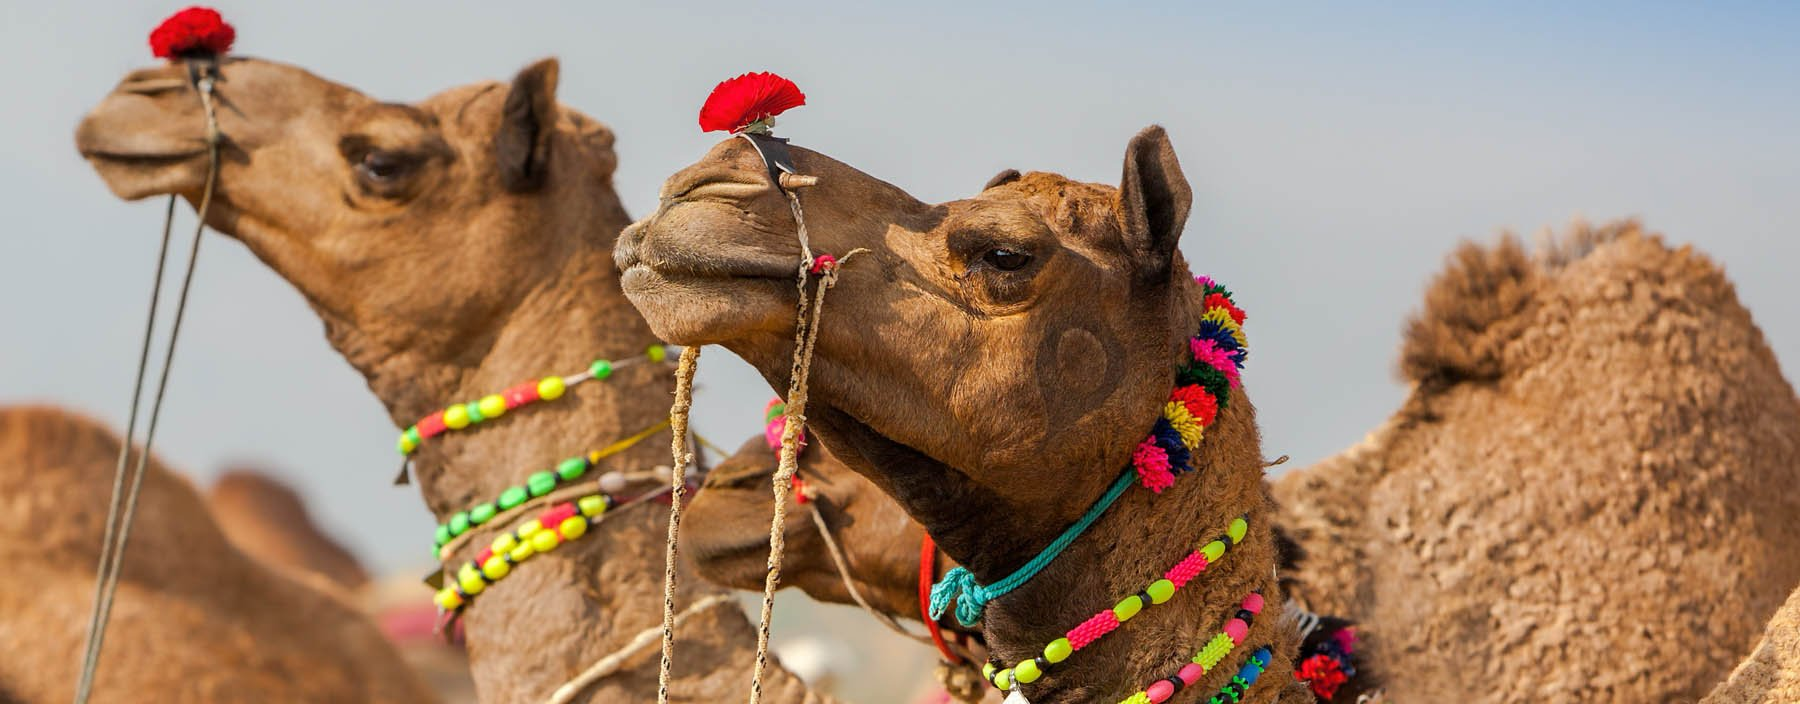 in, pushkar, camels at the pushkar fair.jpg